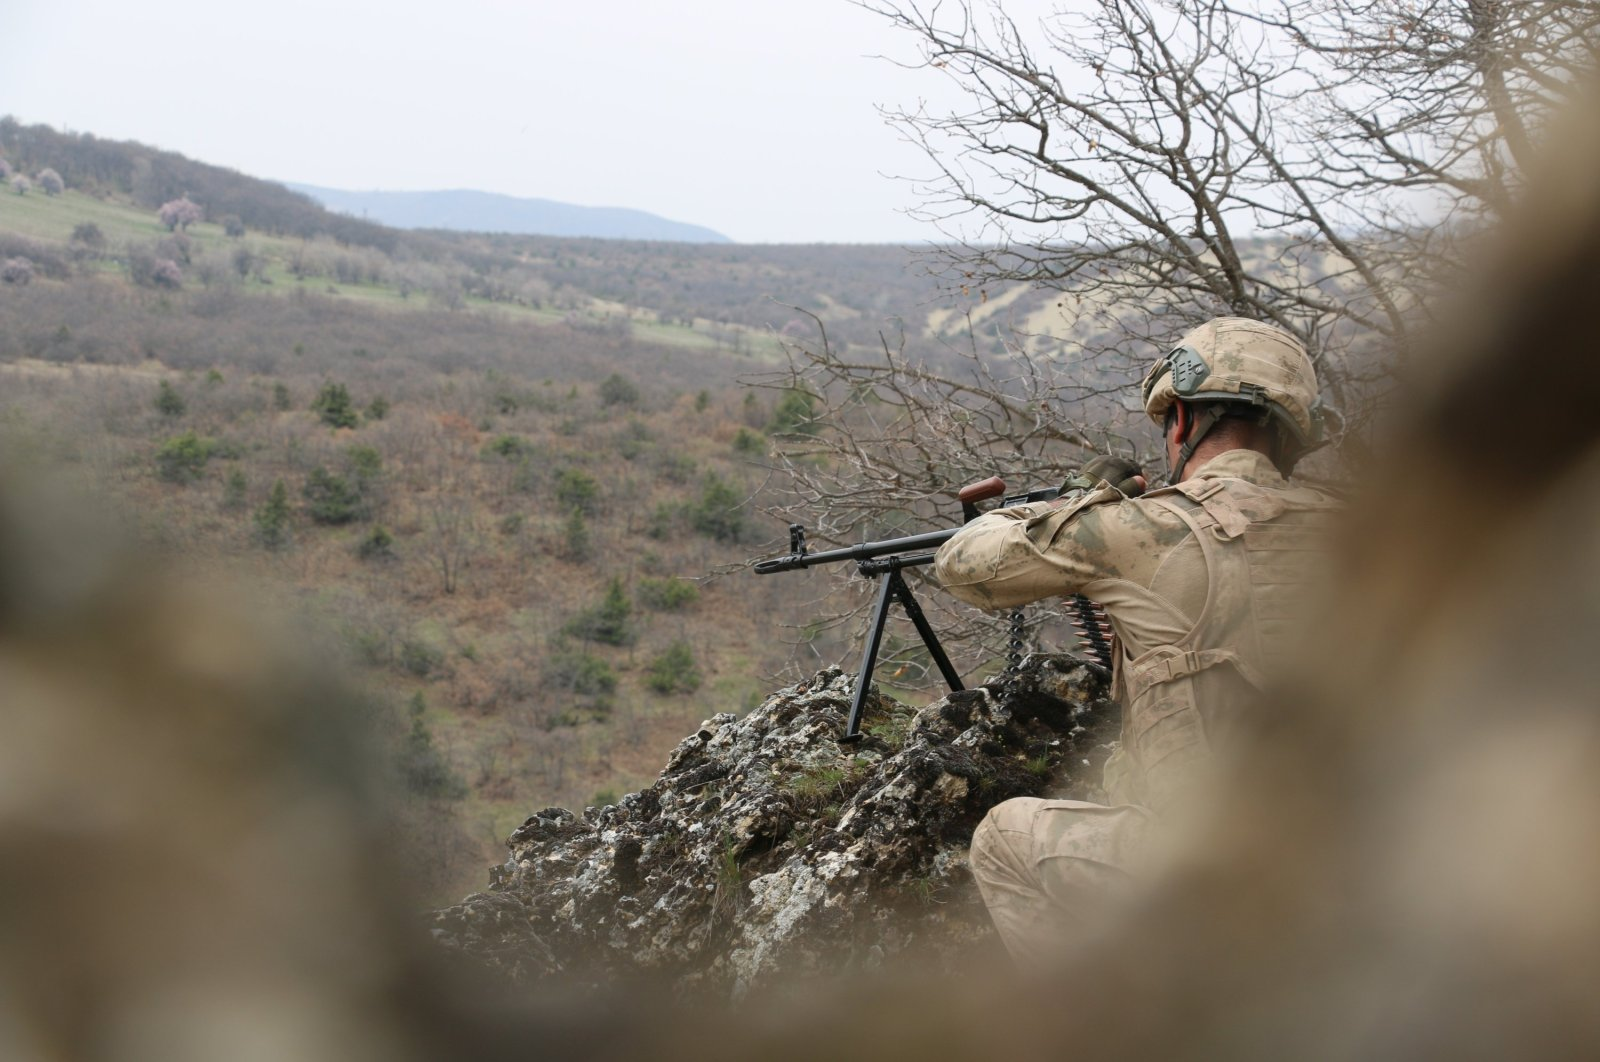 A Turkish soldier participates in Operation Eren-7 in Tunceli province, Turkey in this undated photo. (IHA File Photo)